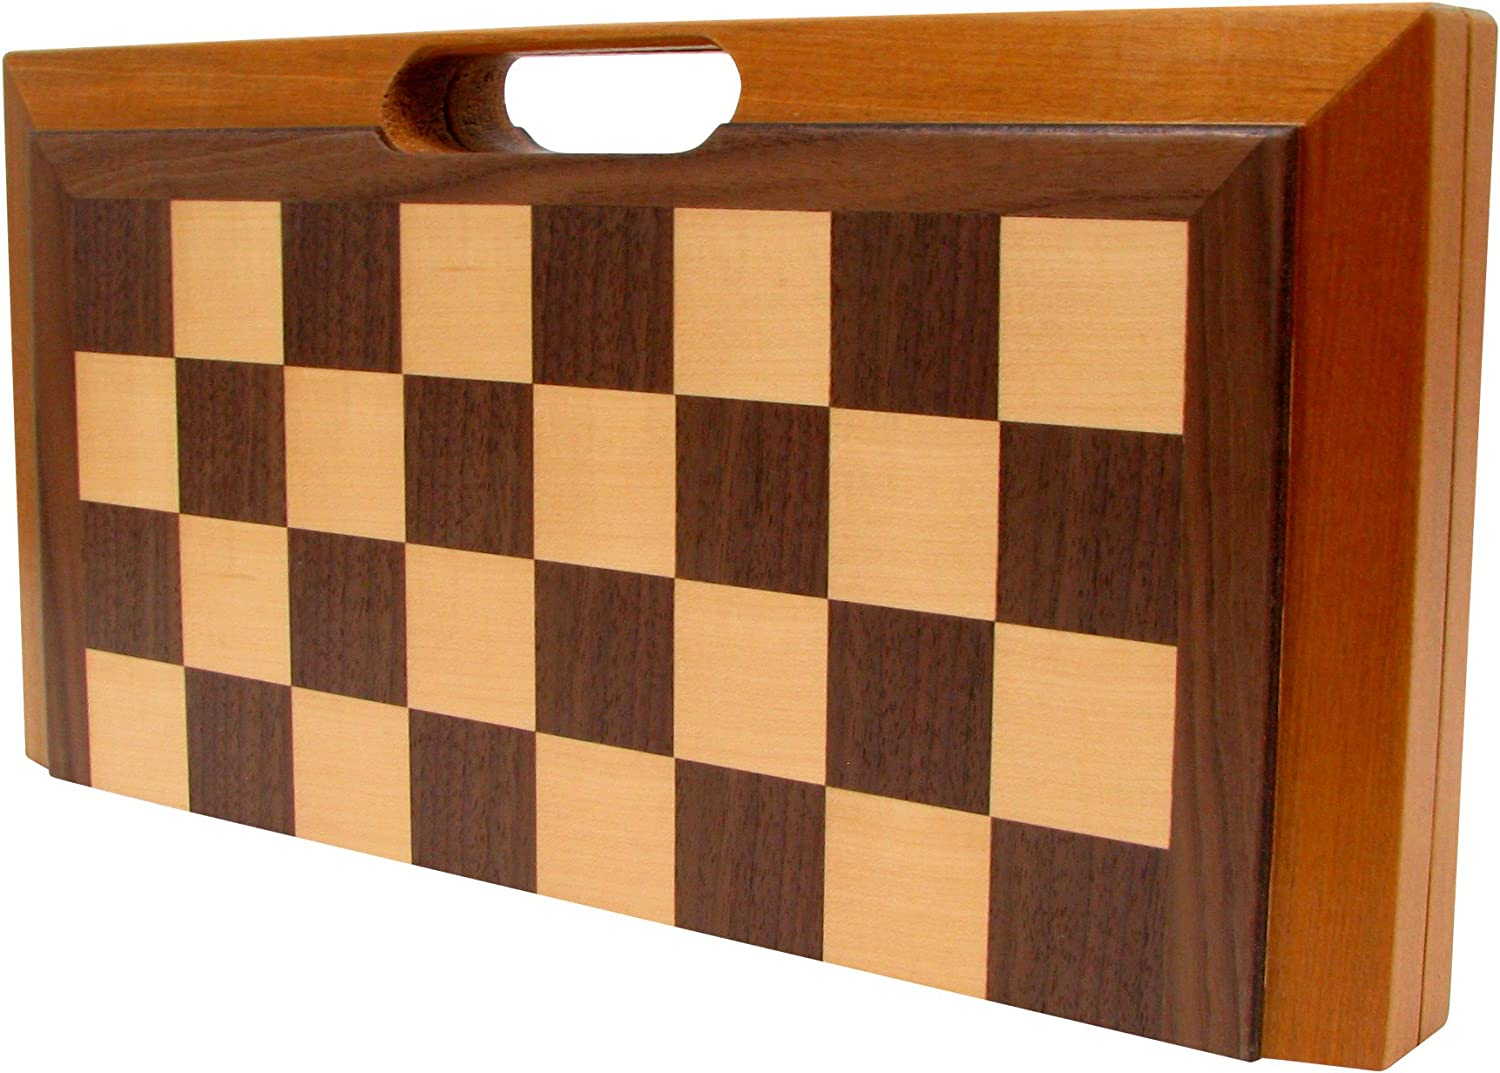 Wooden chess Backgammon Checkers 3 In 1 Wooden Pieces Kids Adults Handmade 29x29